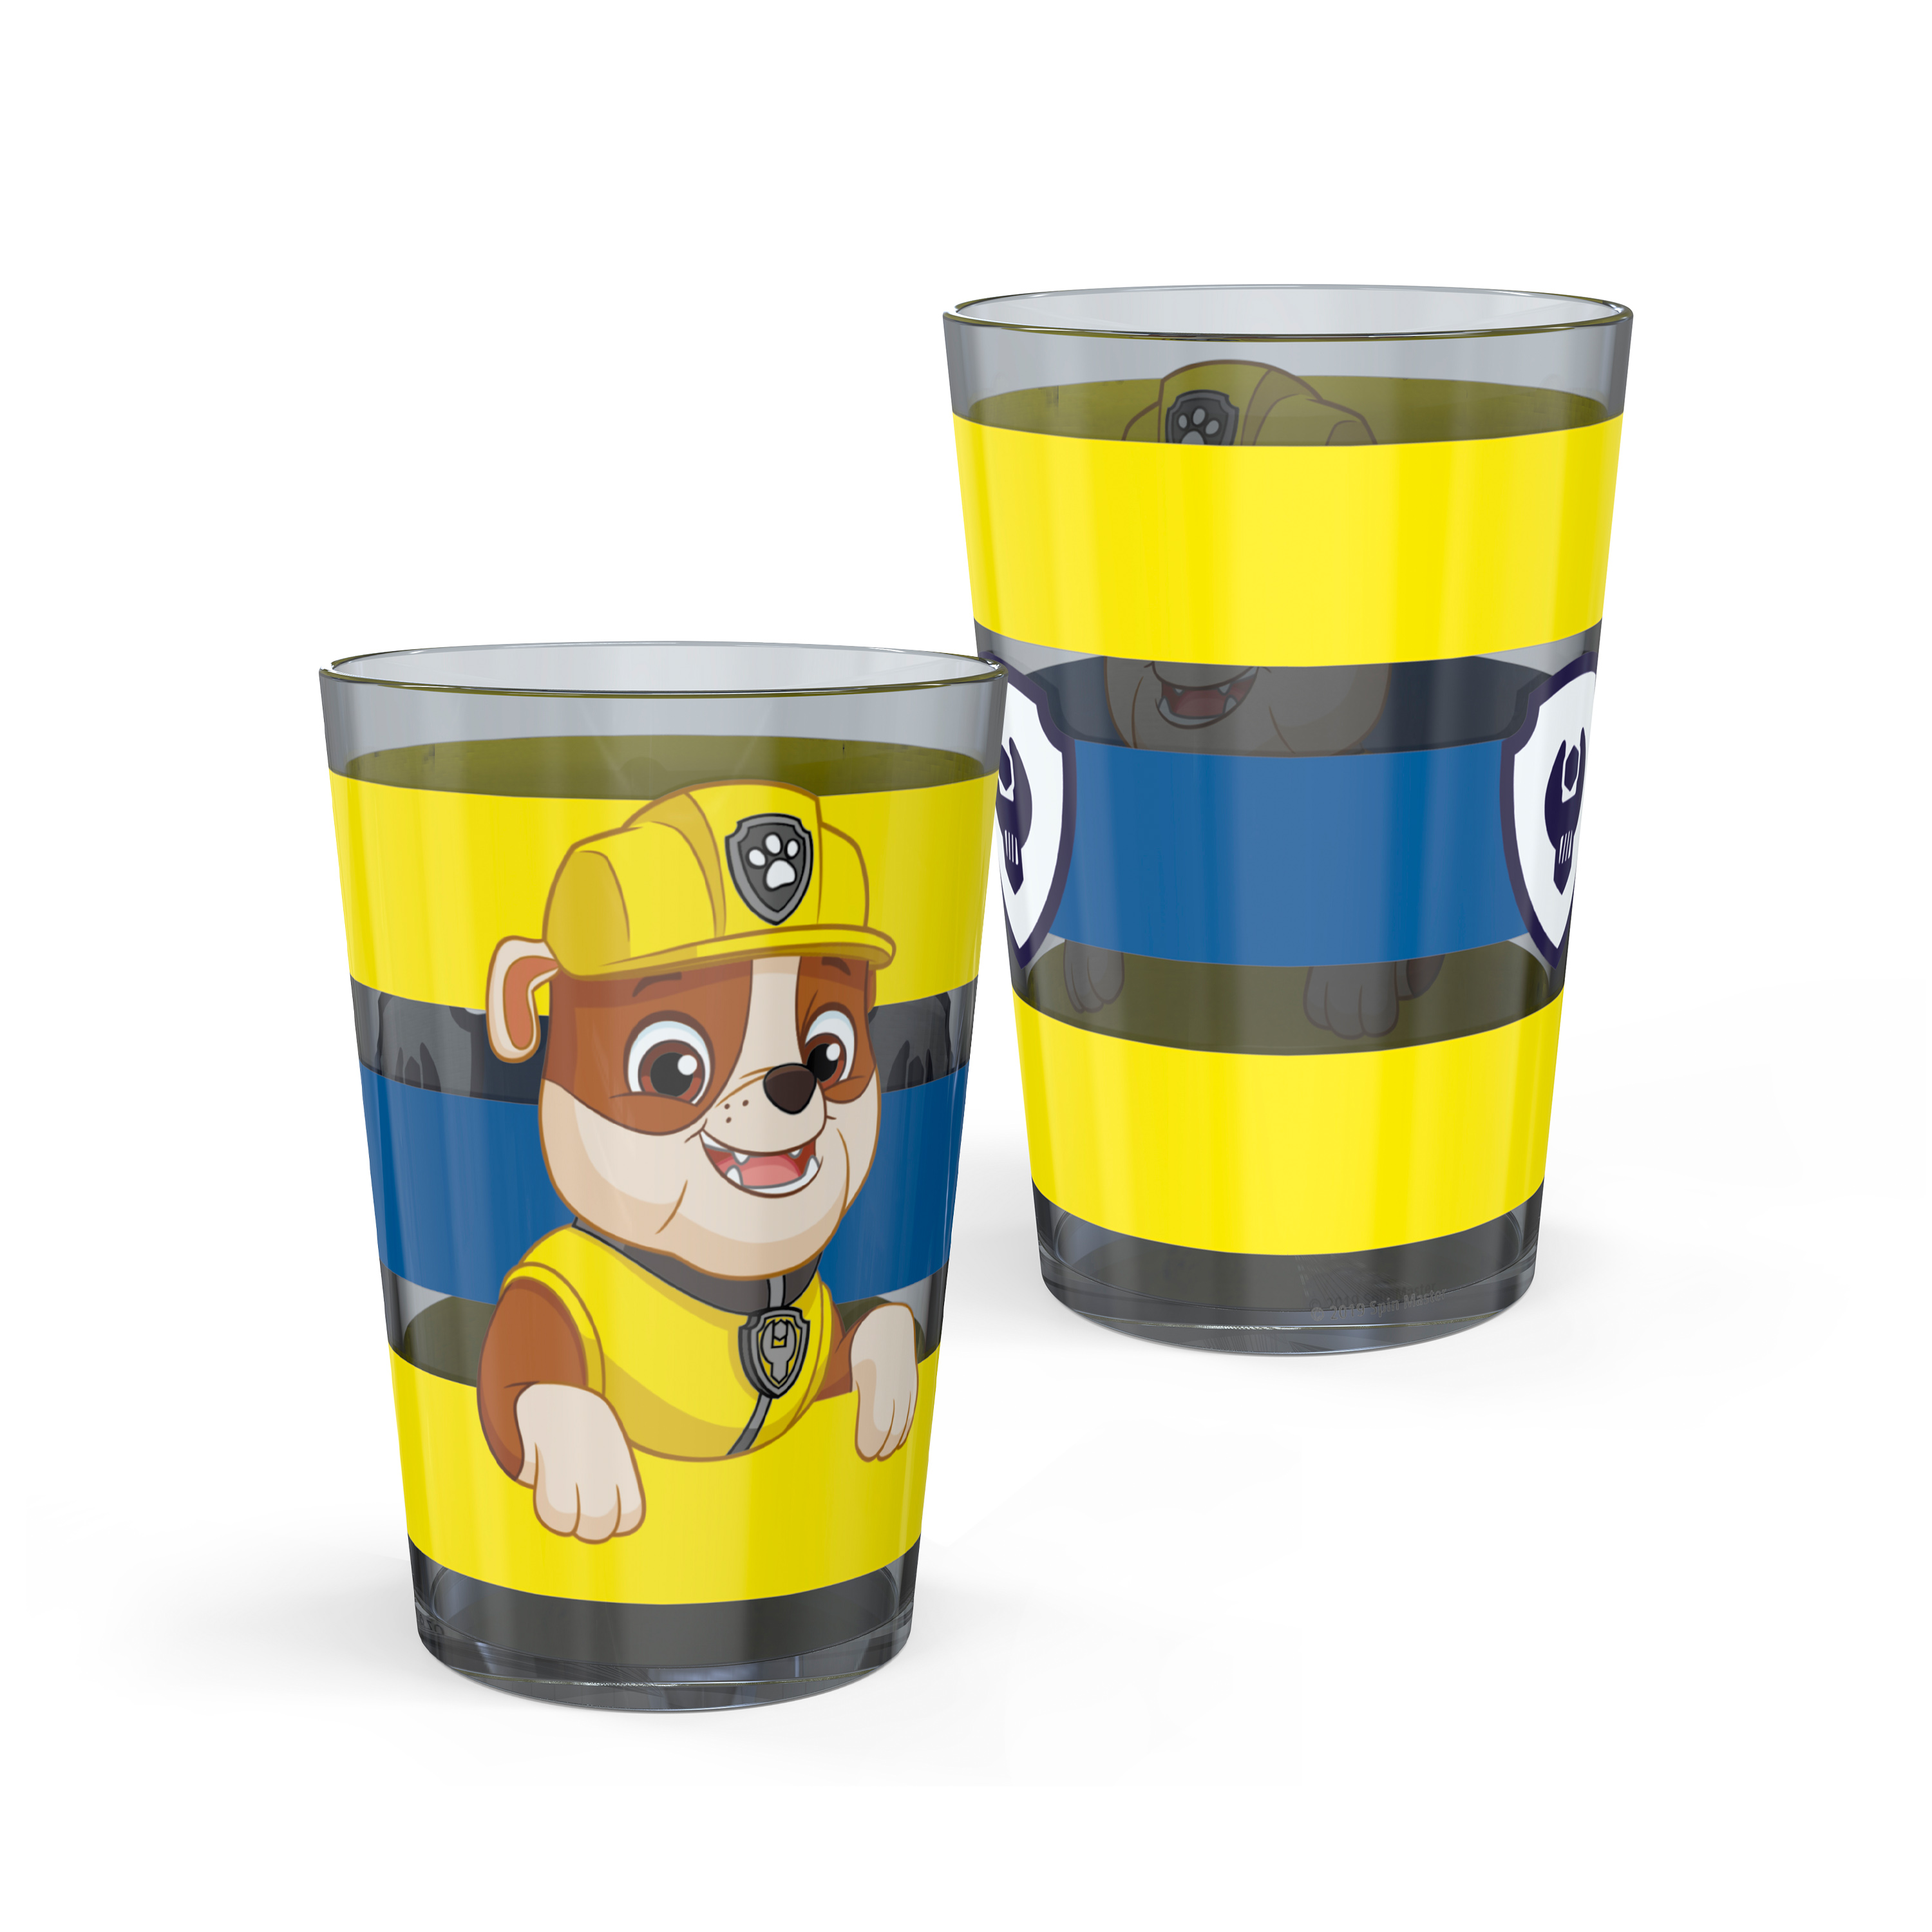 Paw Patrol 14.5 ounce Tumbler, Chase, Skye and Friends, 4-piece set slideshow image 6